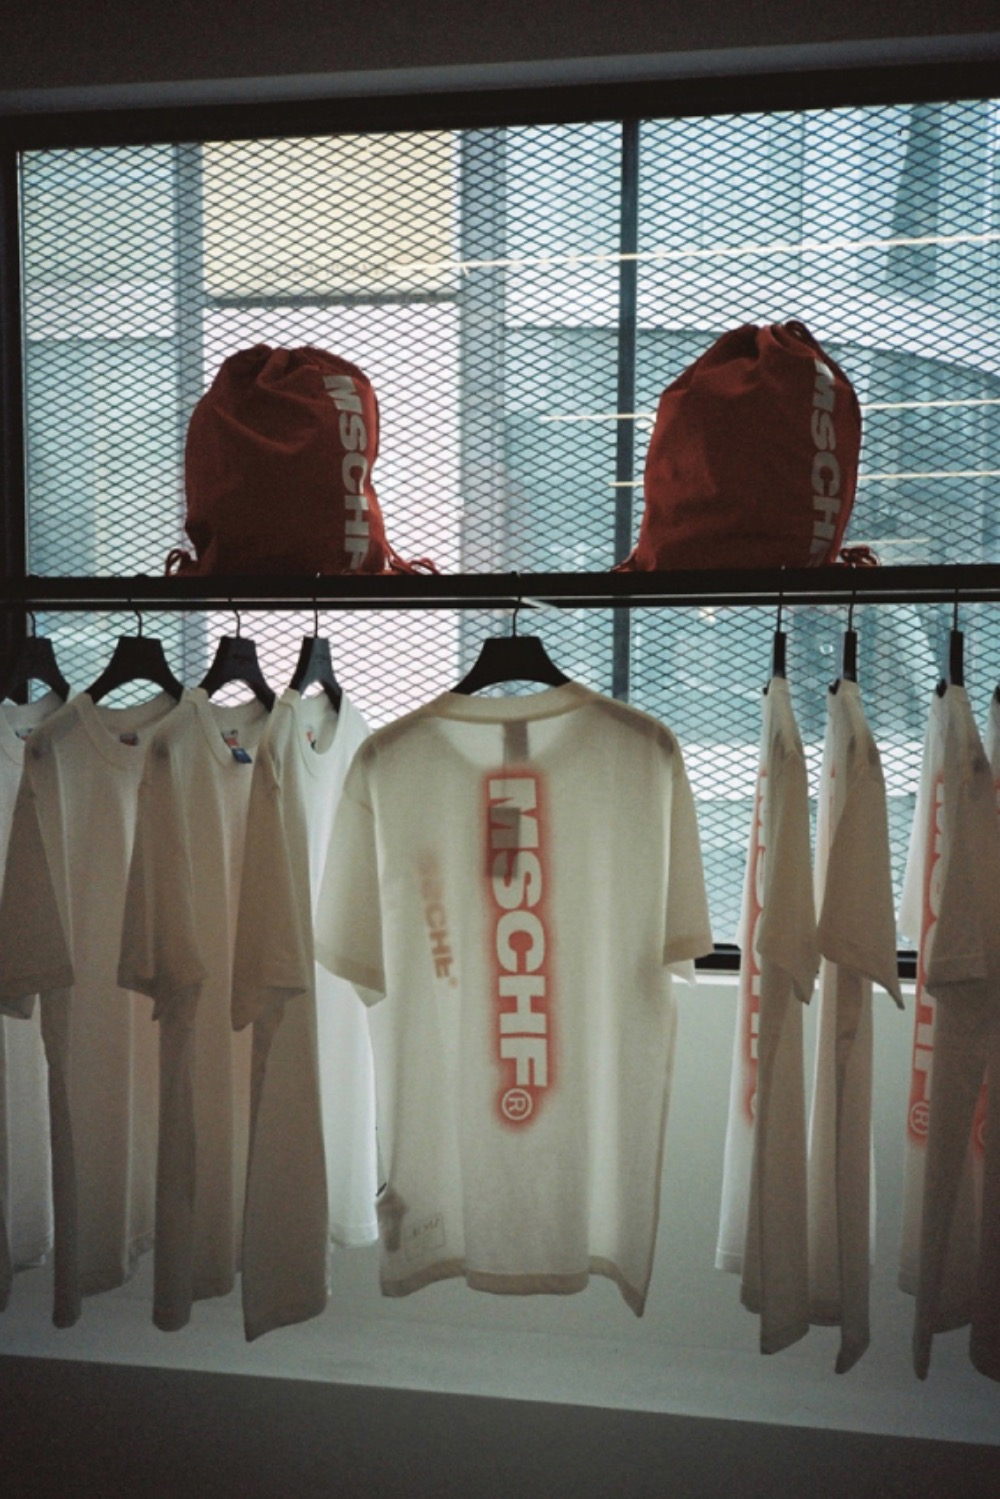 MSCHF FLAGSHIP STORE | PHOTO RECAP